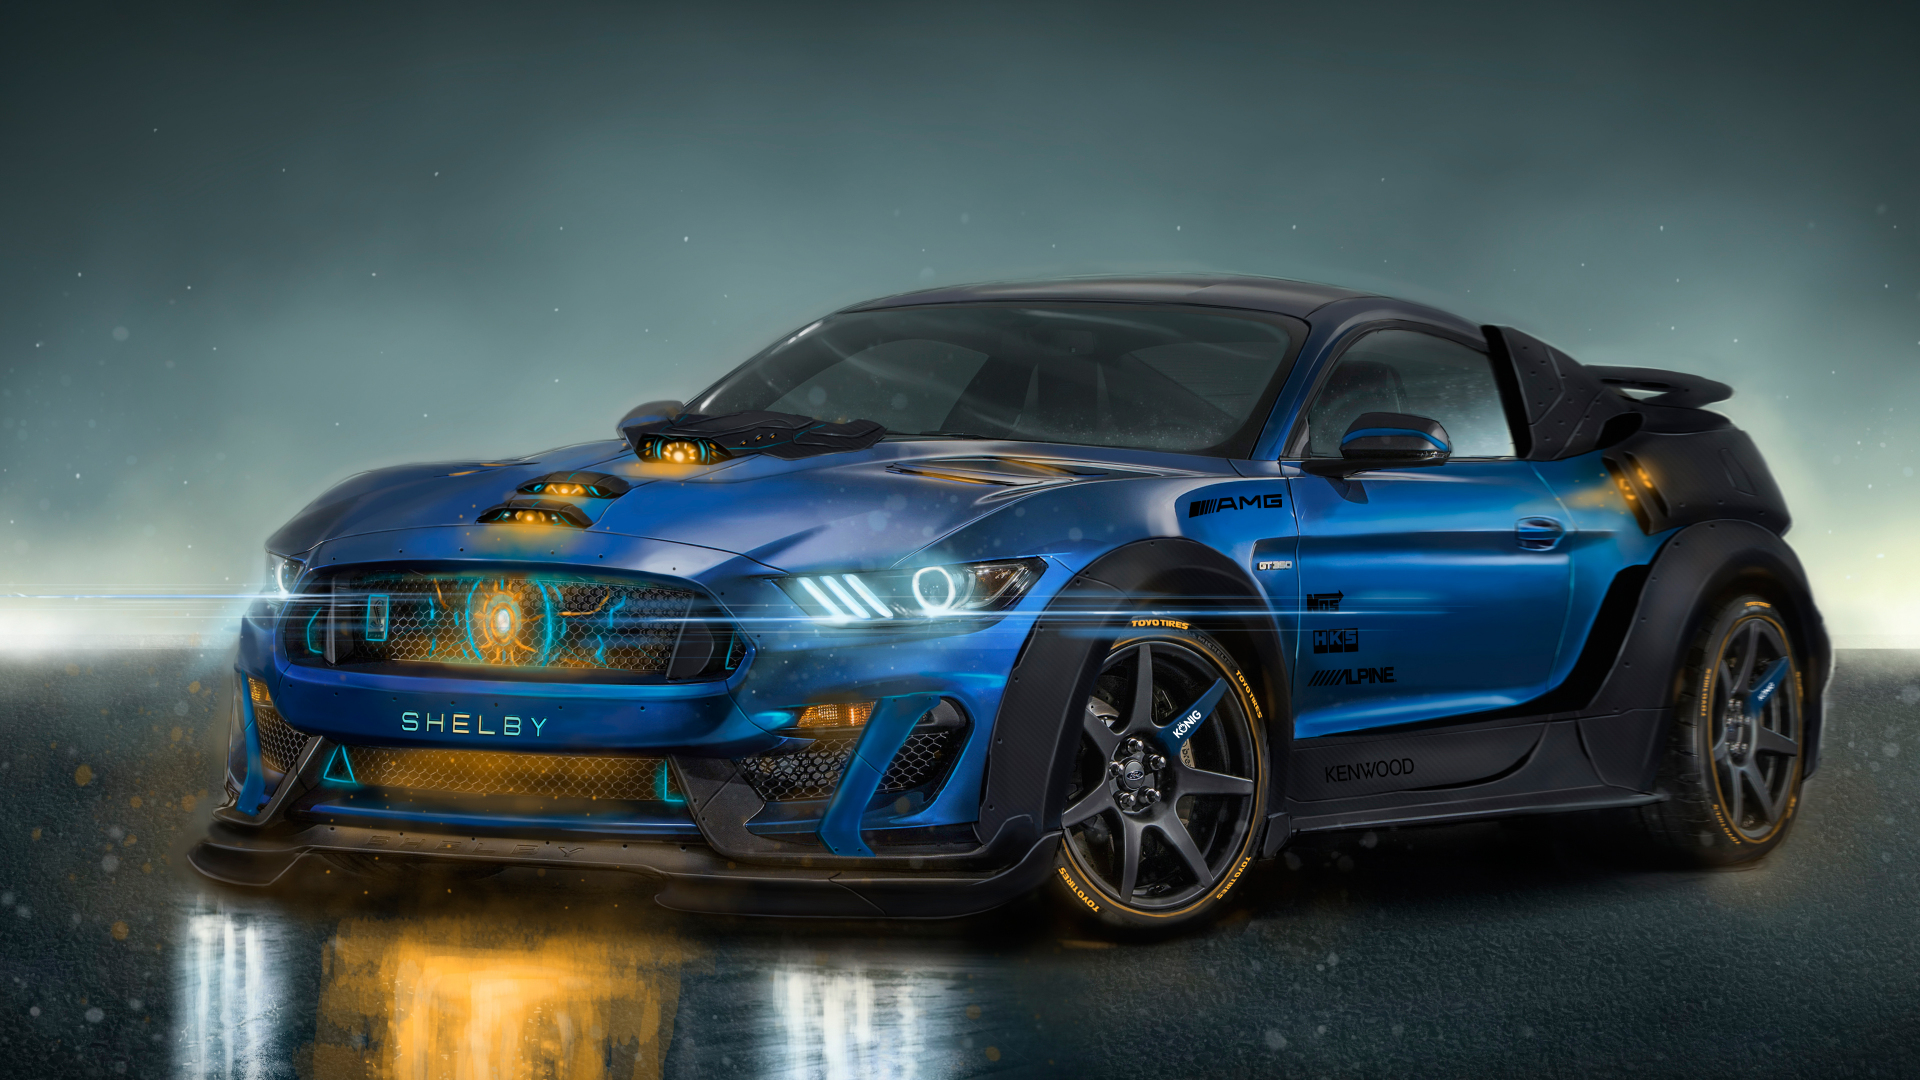 Download 1920x1080 Wallpaper Ford Mustang Shelby Gt350 Sports Car